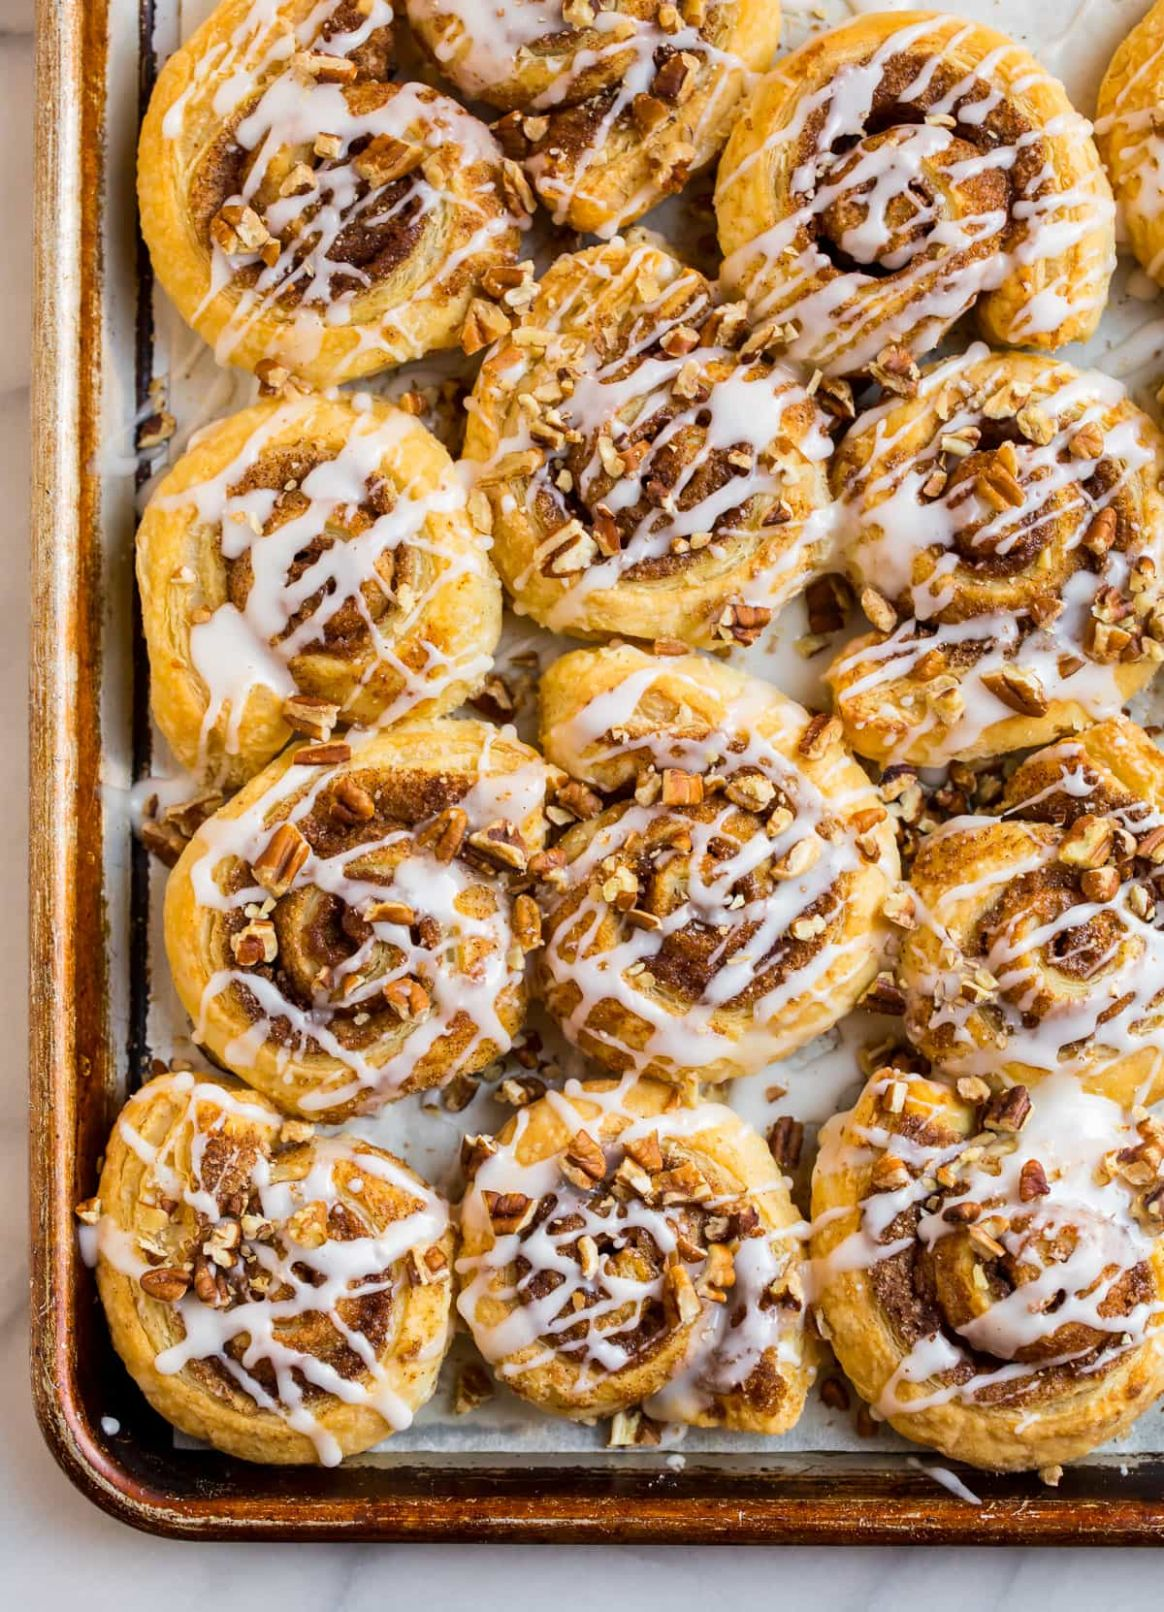 Puff Pastry Cinnamon Rolls - Easy Recipes Using Puff Pastry